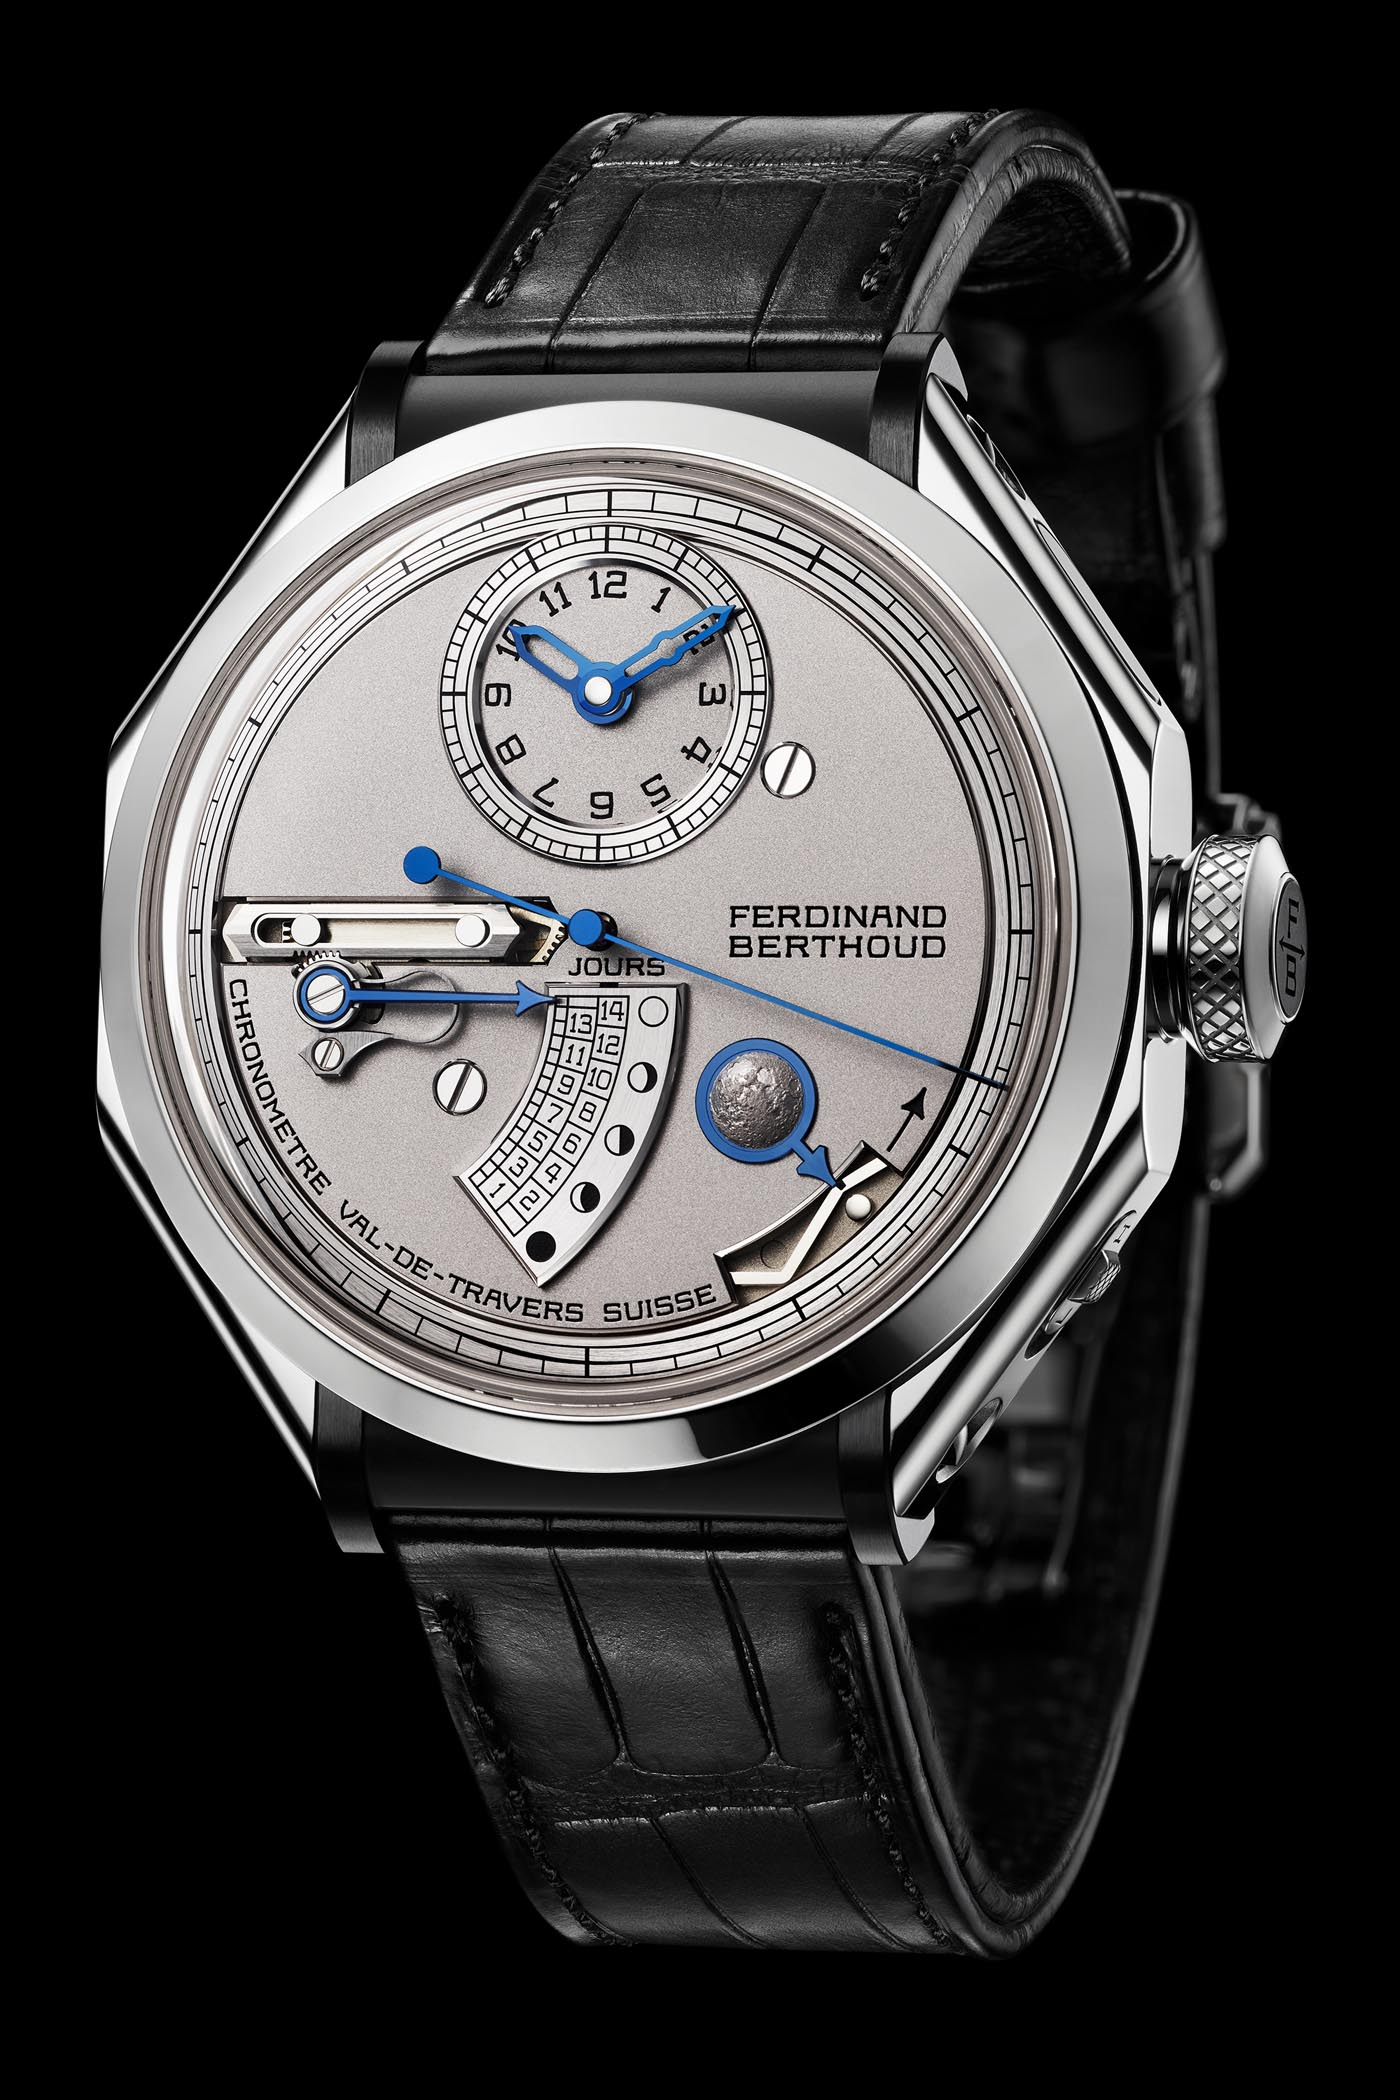 Ferdinand Berthoud Chronometre FB 1L Moon Display - Baselworld 2019 - 3